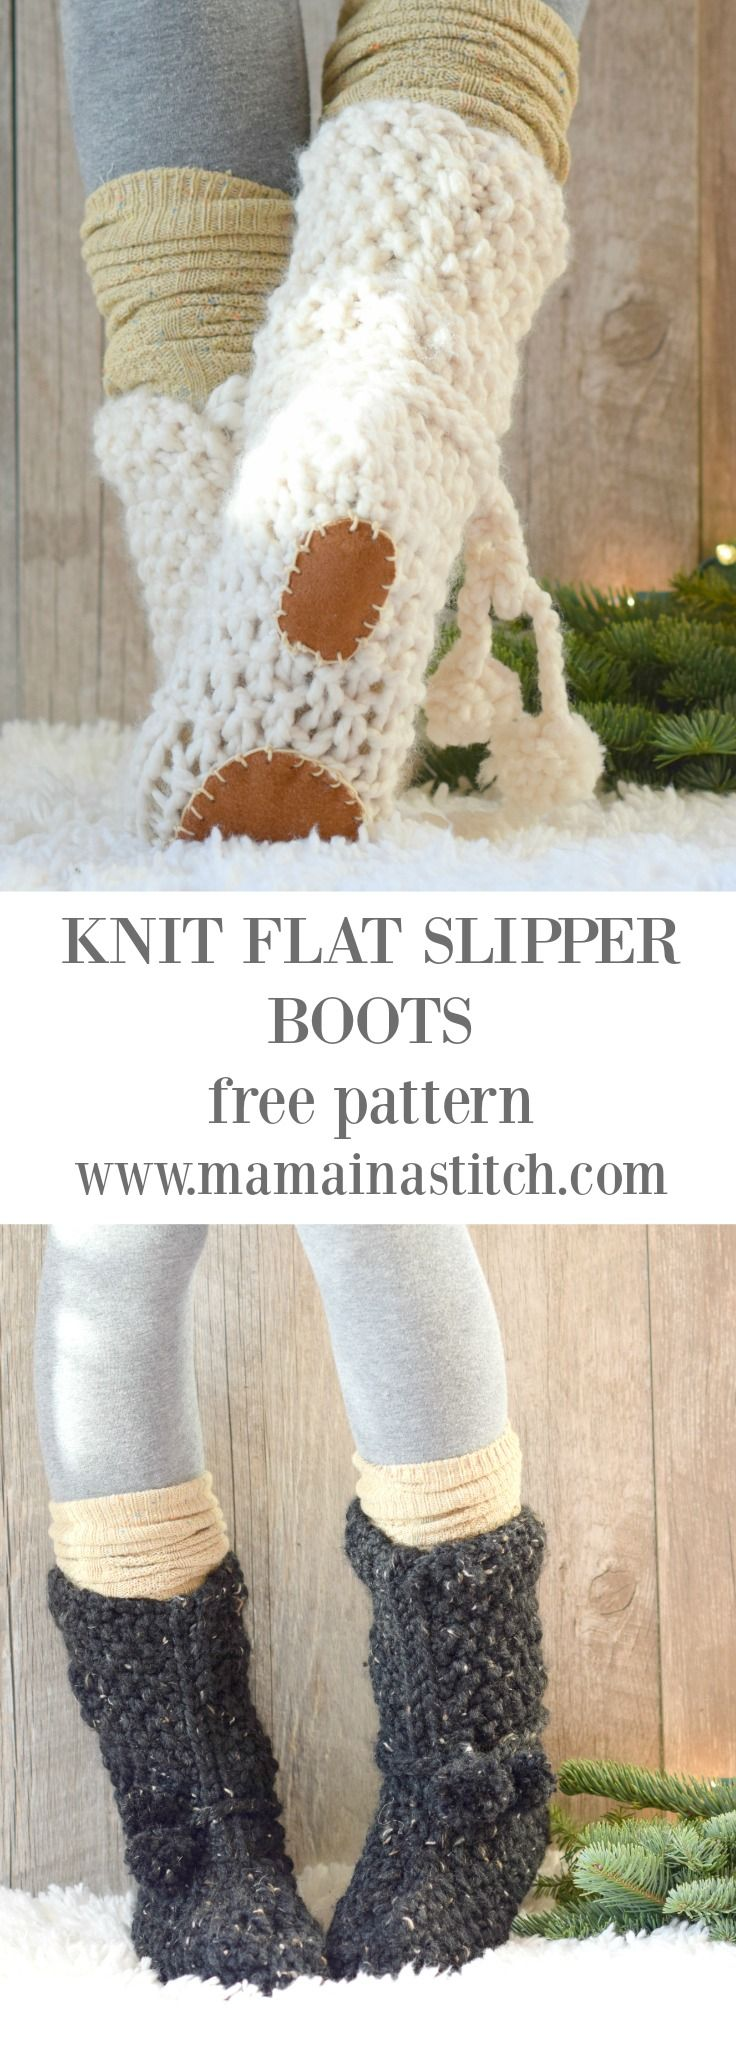 Mountain Chalet Boot Slipper Knitting Pattern (Knit Flat) via @MamaInAStitch These beginner friendly, knit slipper boots can be made quickly! #diy #knitting #how to